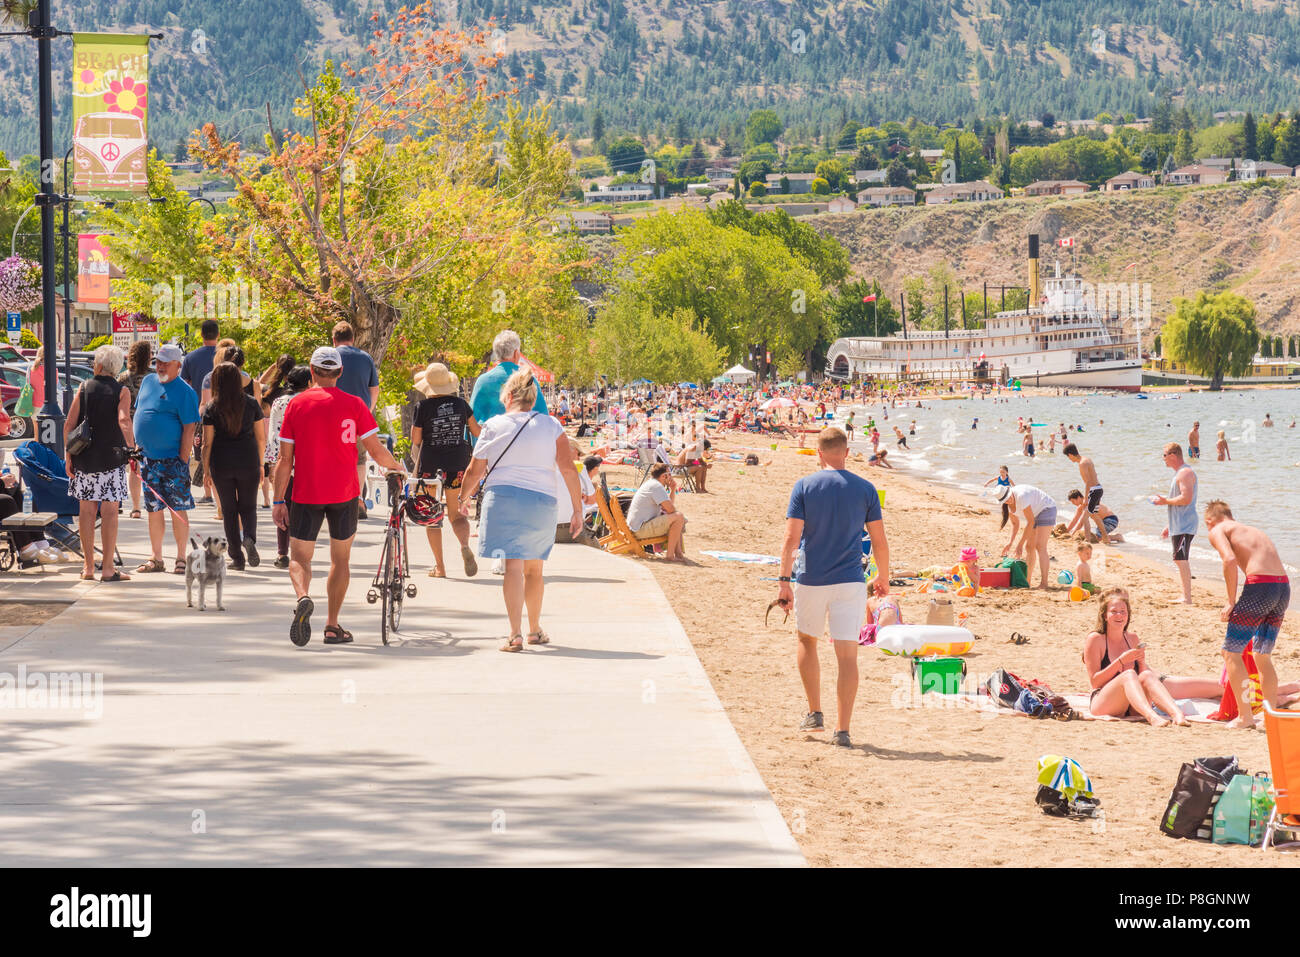 Penticton, British Columbia/Canada - July 7, 2018: tourists and locals walk along the lakeshore and enjoy the beach on Okanagan Lake on a hot summer d - Stock Photo